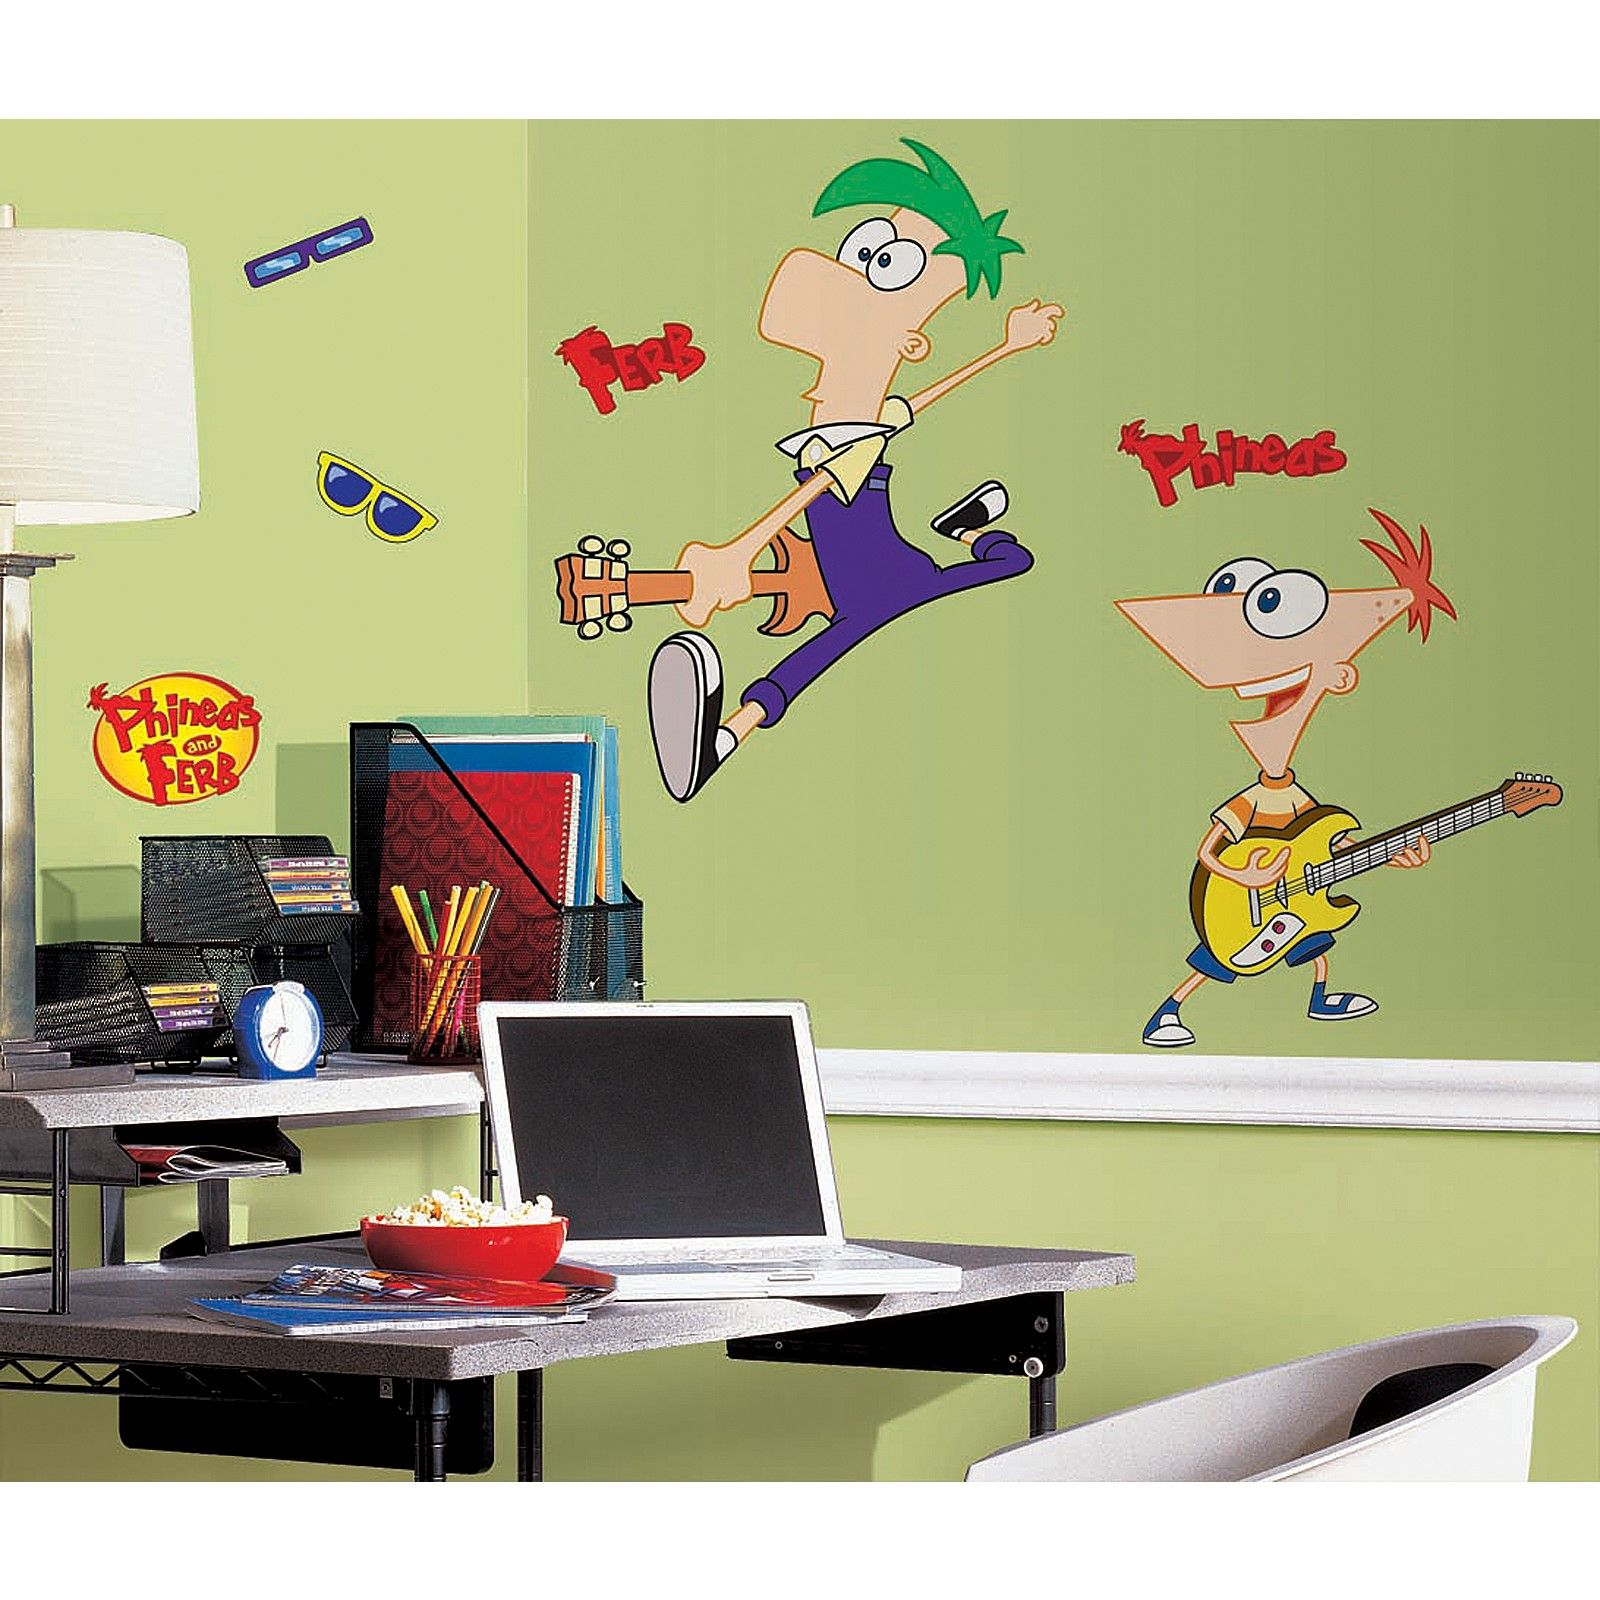 Disney Phineas and Ferb Giant Wall Decal, 75517 | Dominic stuff ...